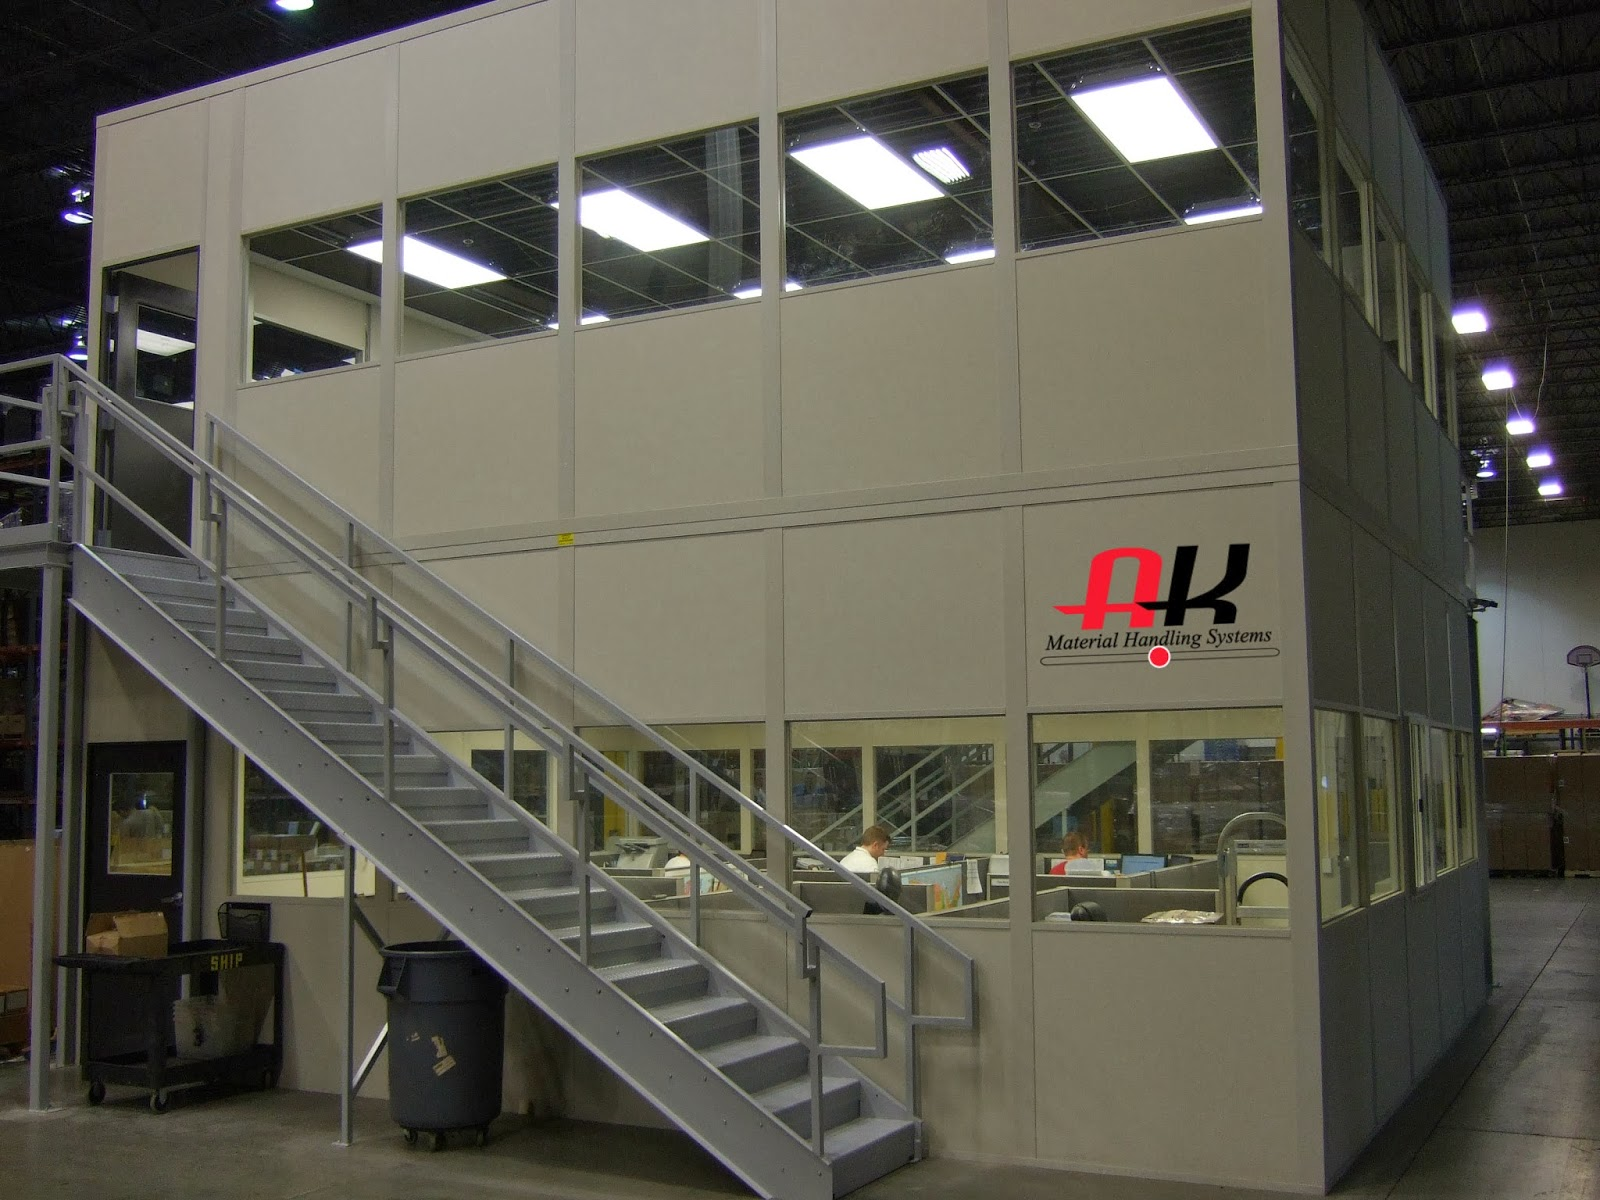 Beau Create A Modular Office Just About Anywhere U2013 AK Material Handling Systems